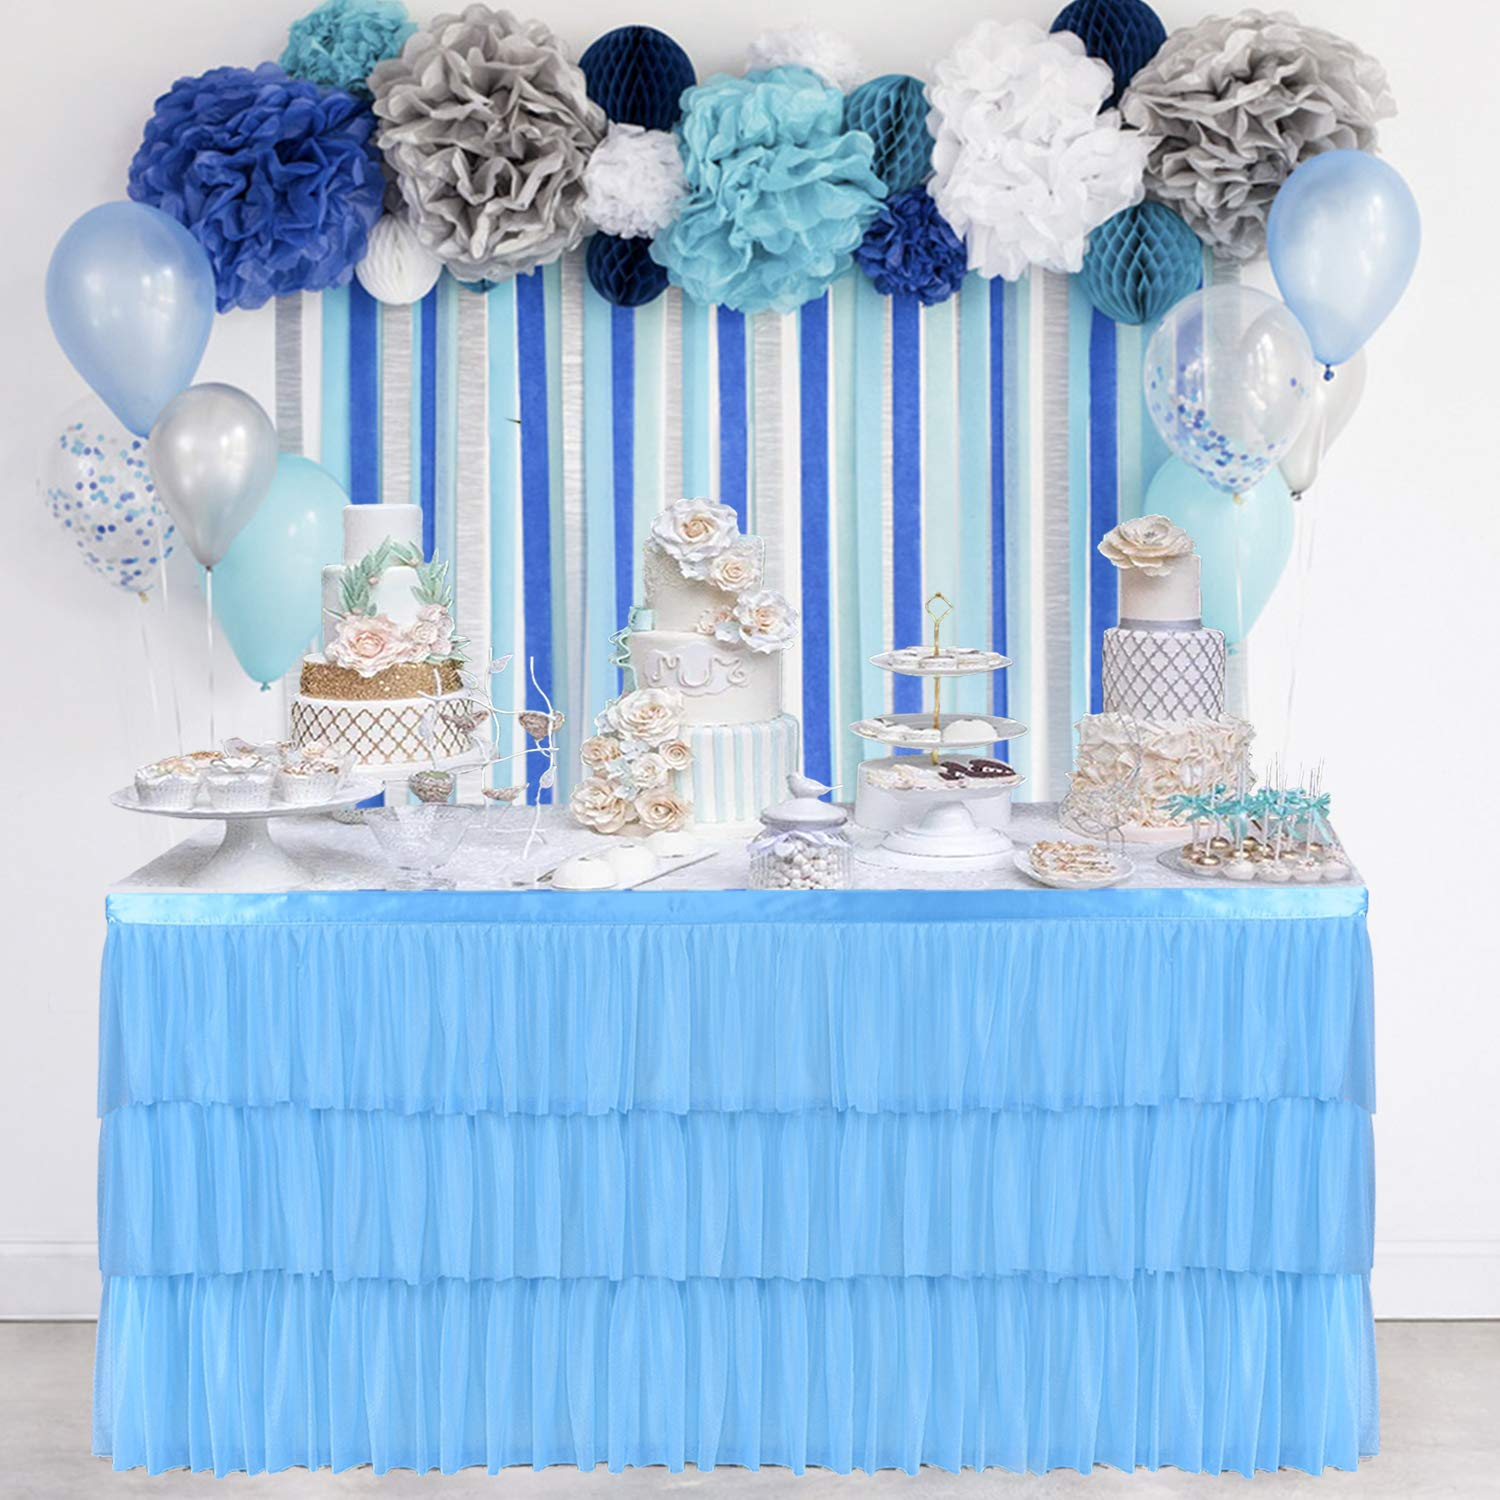 Blue 6ft Tulle Table Skirt 3 Tier Mesh Fluffy with Soft Dust Lining Table Tutu Skirting for Rectangular or Round Table for Birthday, Wedding Party Supplies and Special Occasion Decor(L72Inch×H30Inch)